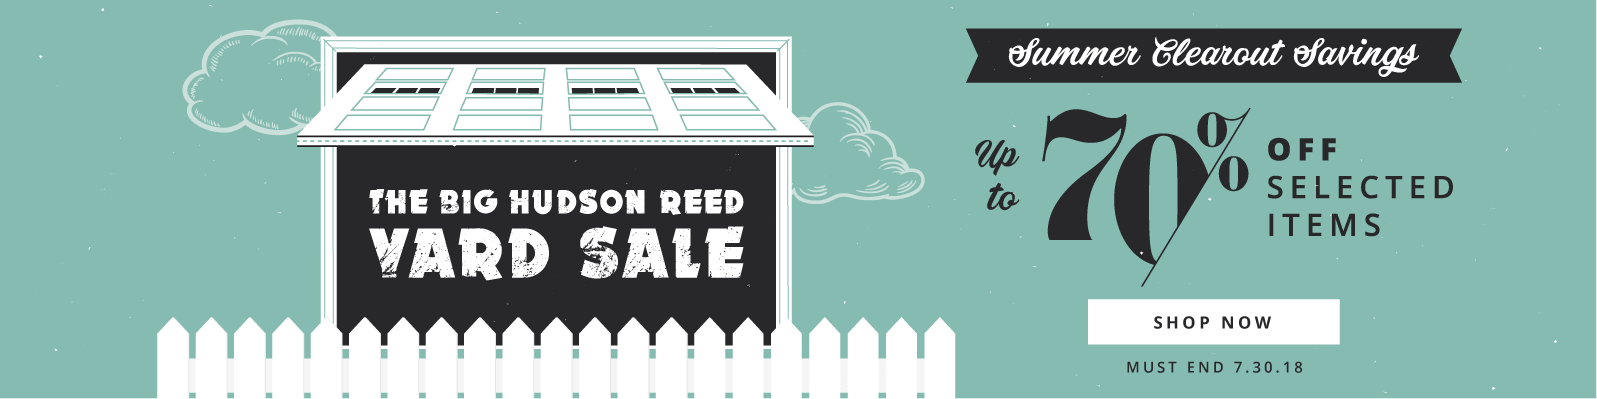 The Big Hudson Reed Yard Sale Summer Clearout Savings Up to 70% off selected items Must End 7.30.18